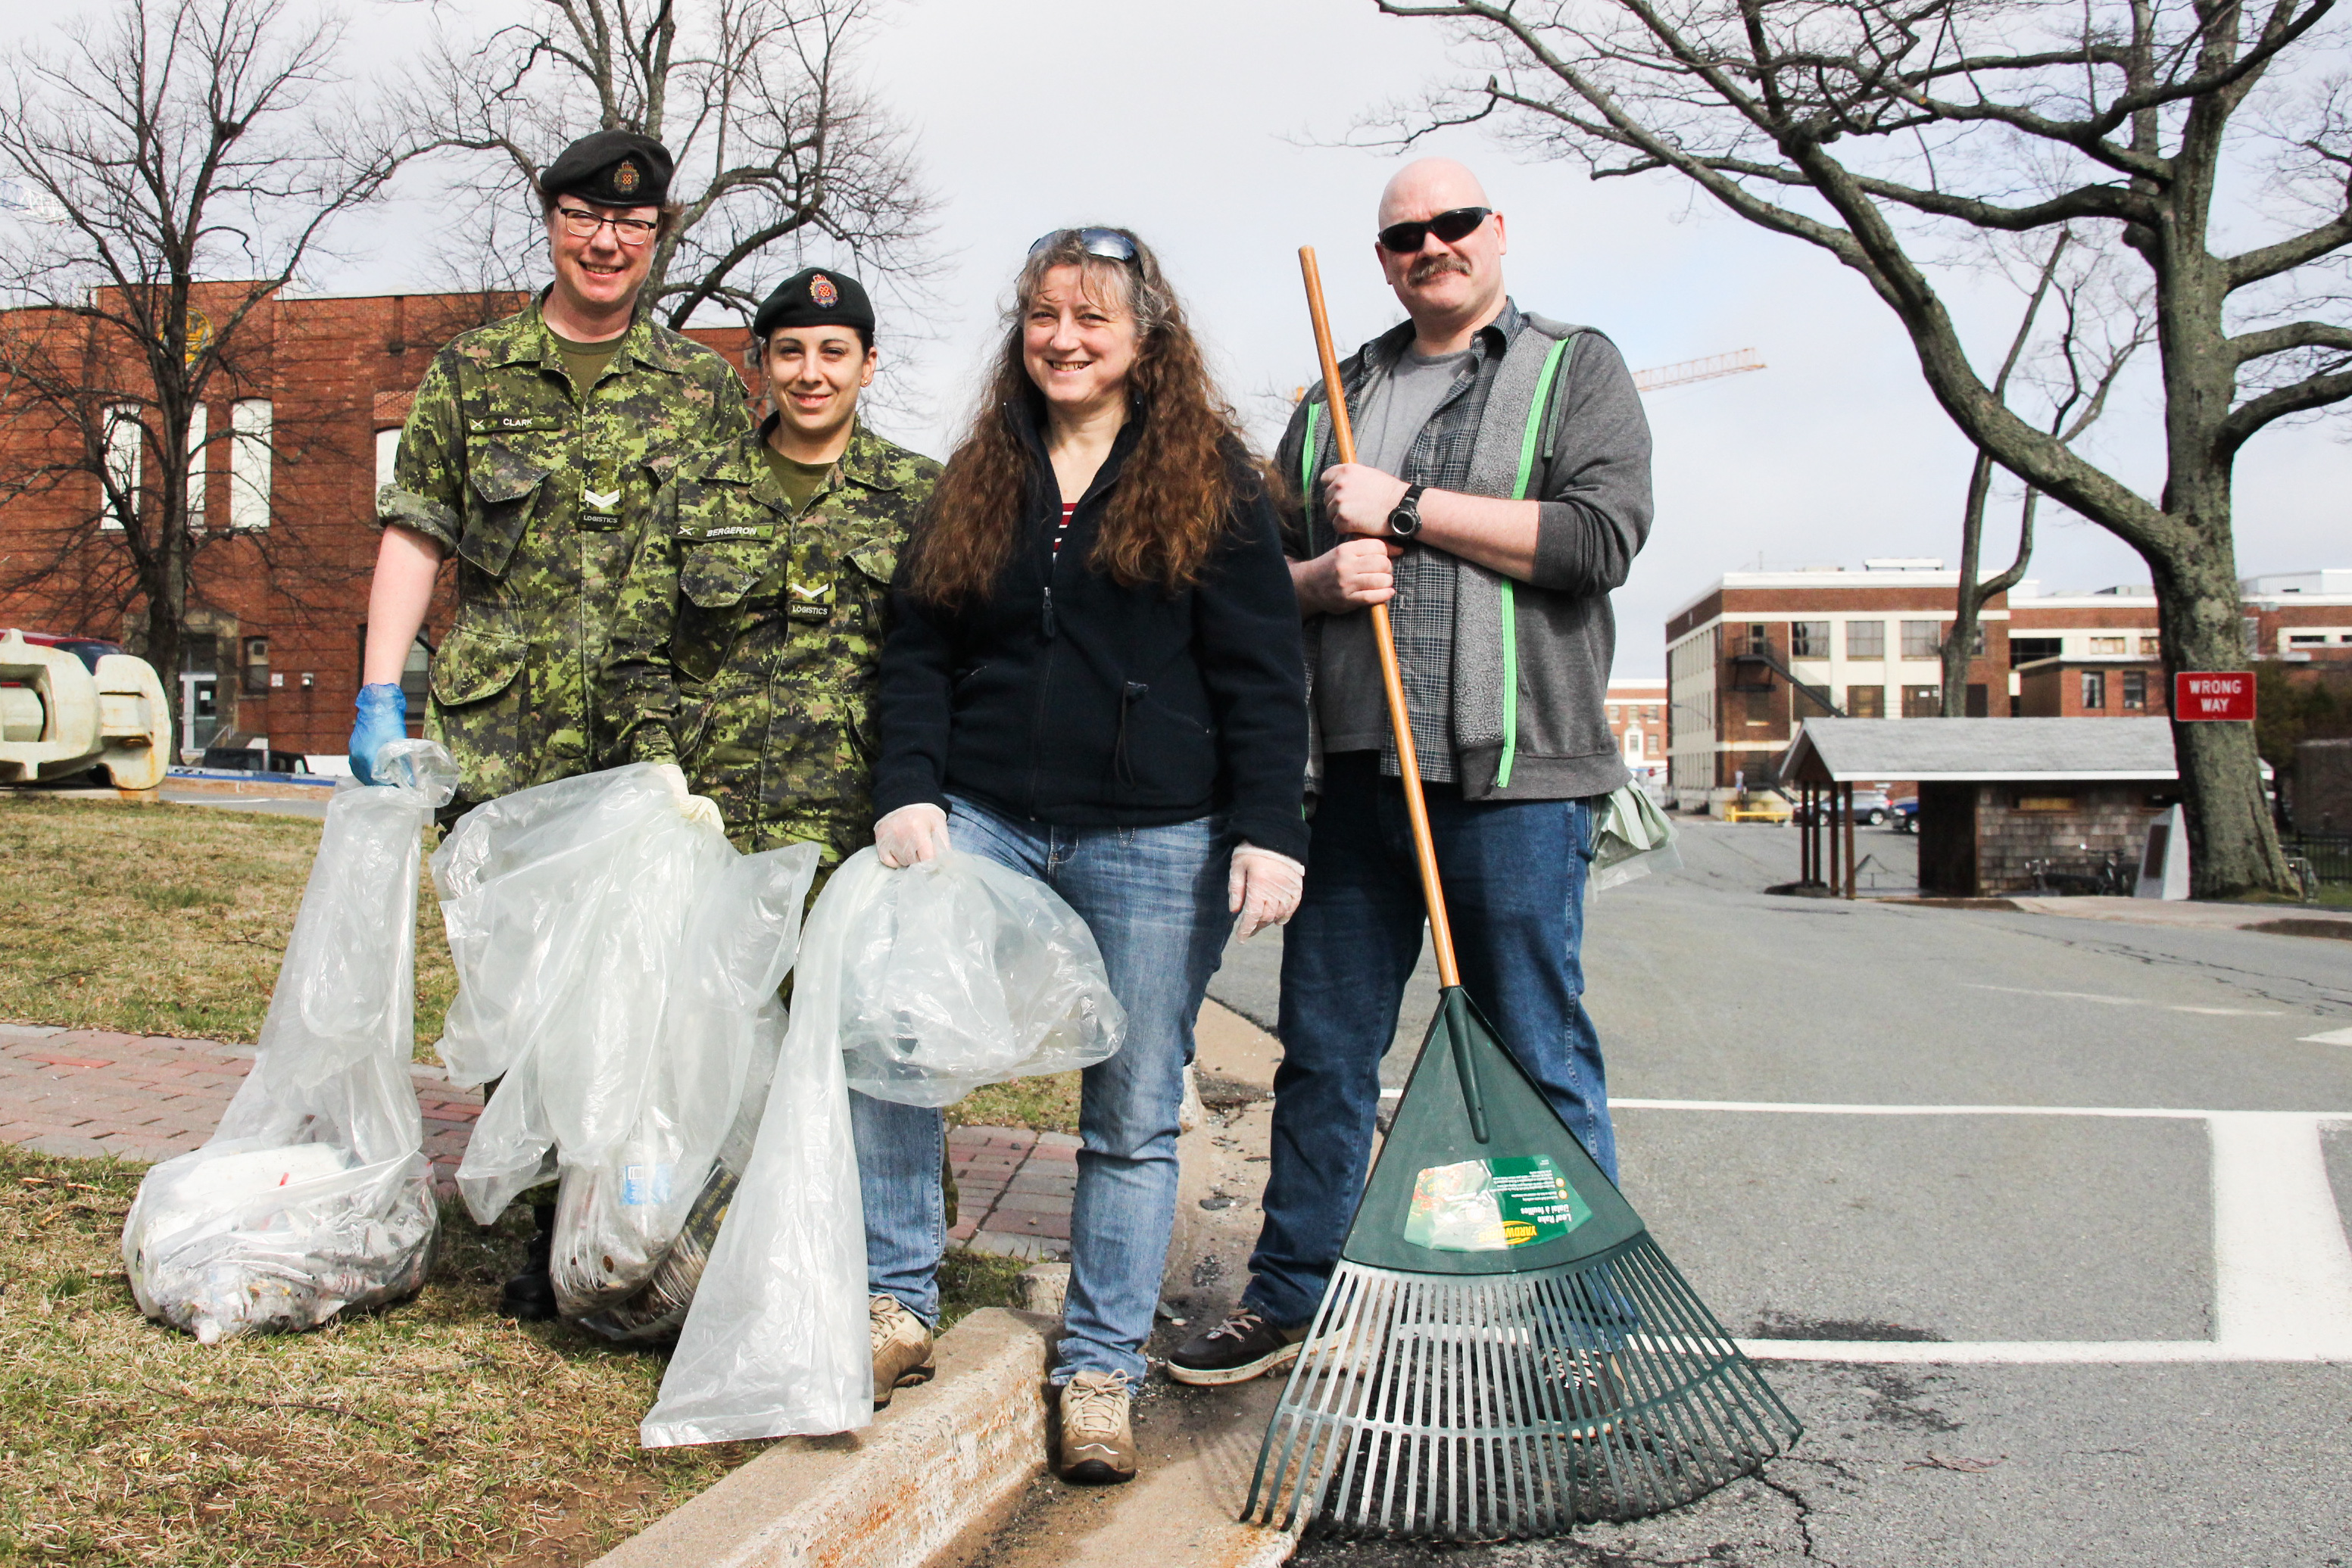 Spring cleanup at CFB Halifax